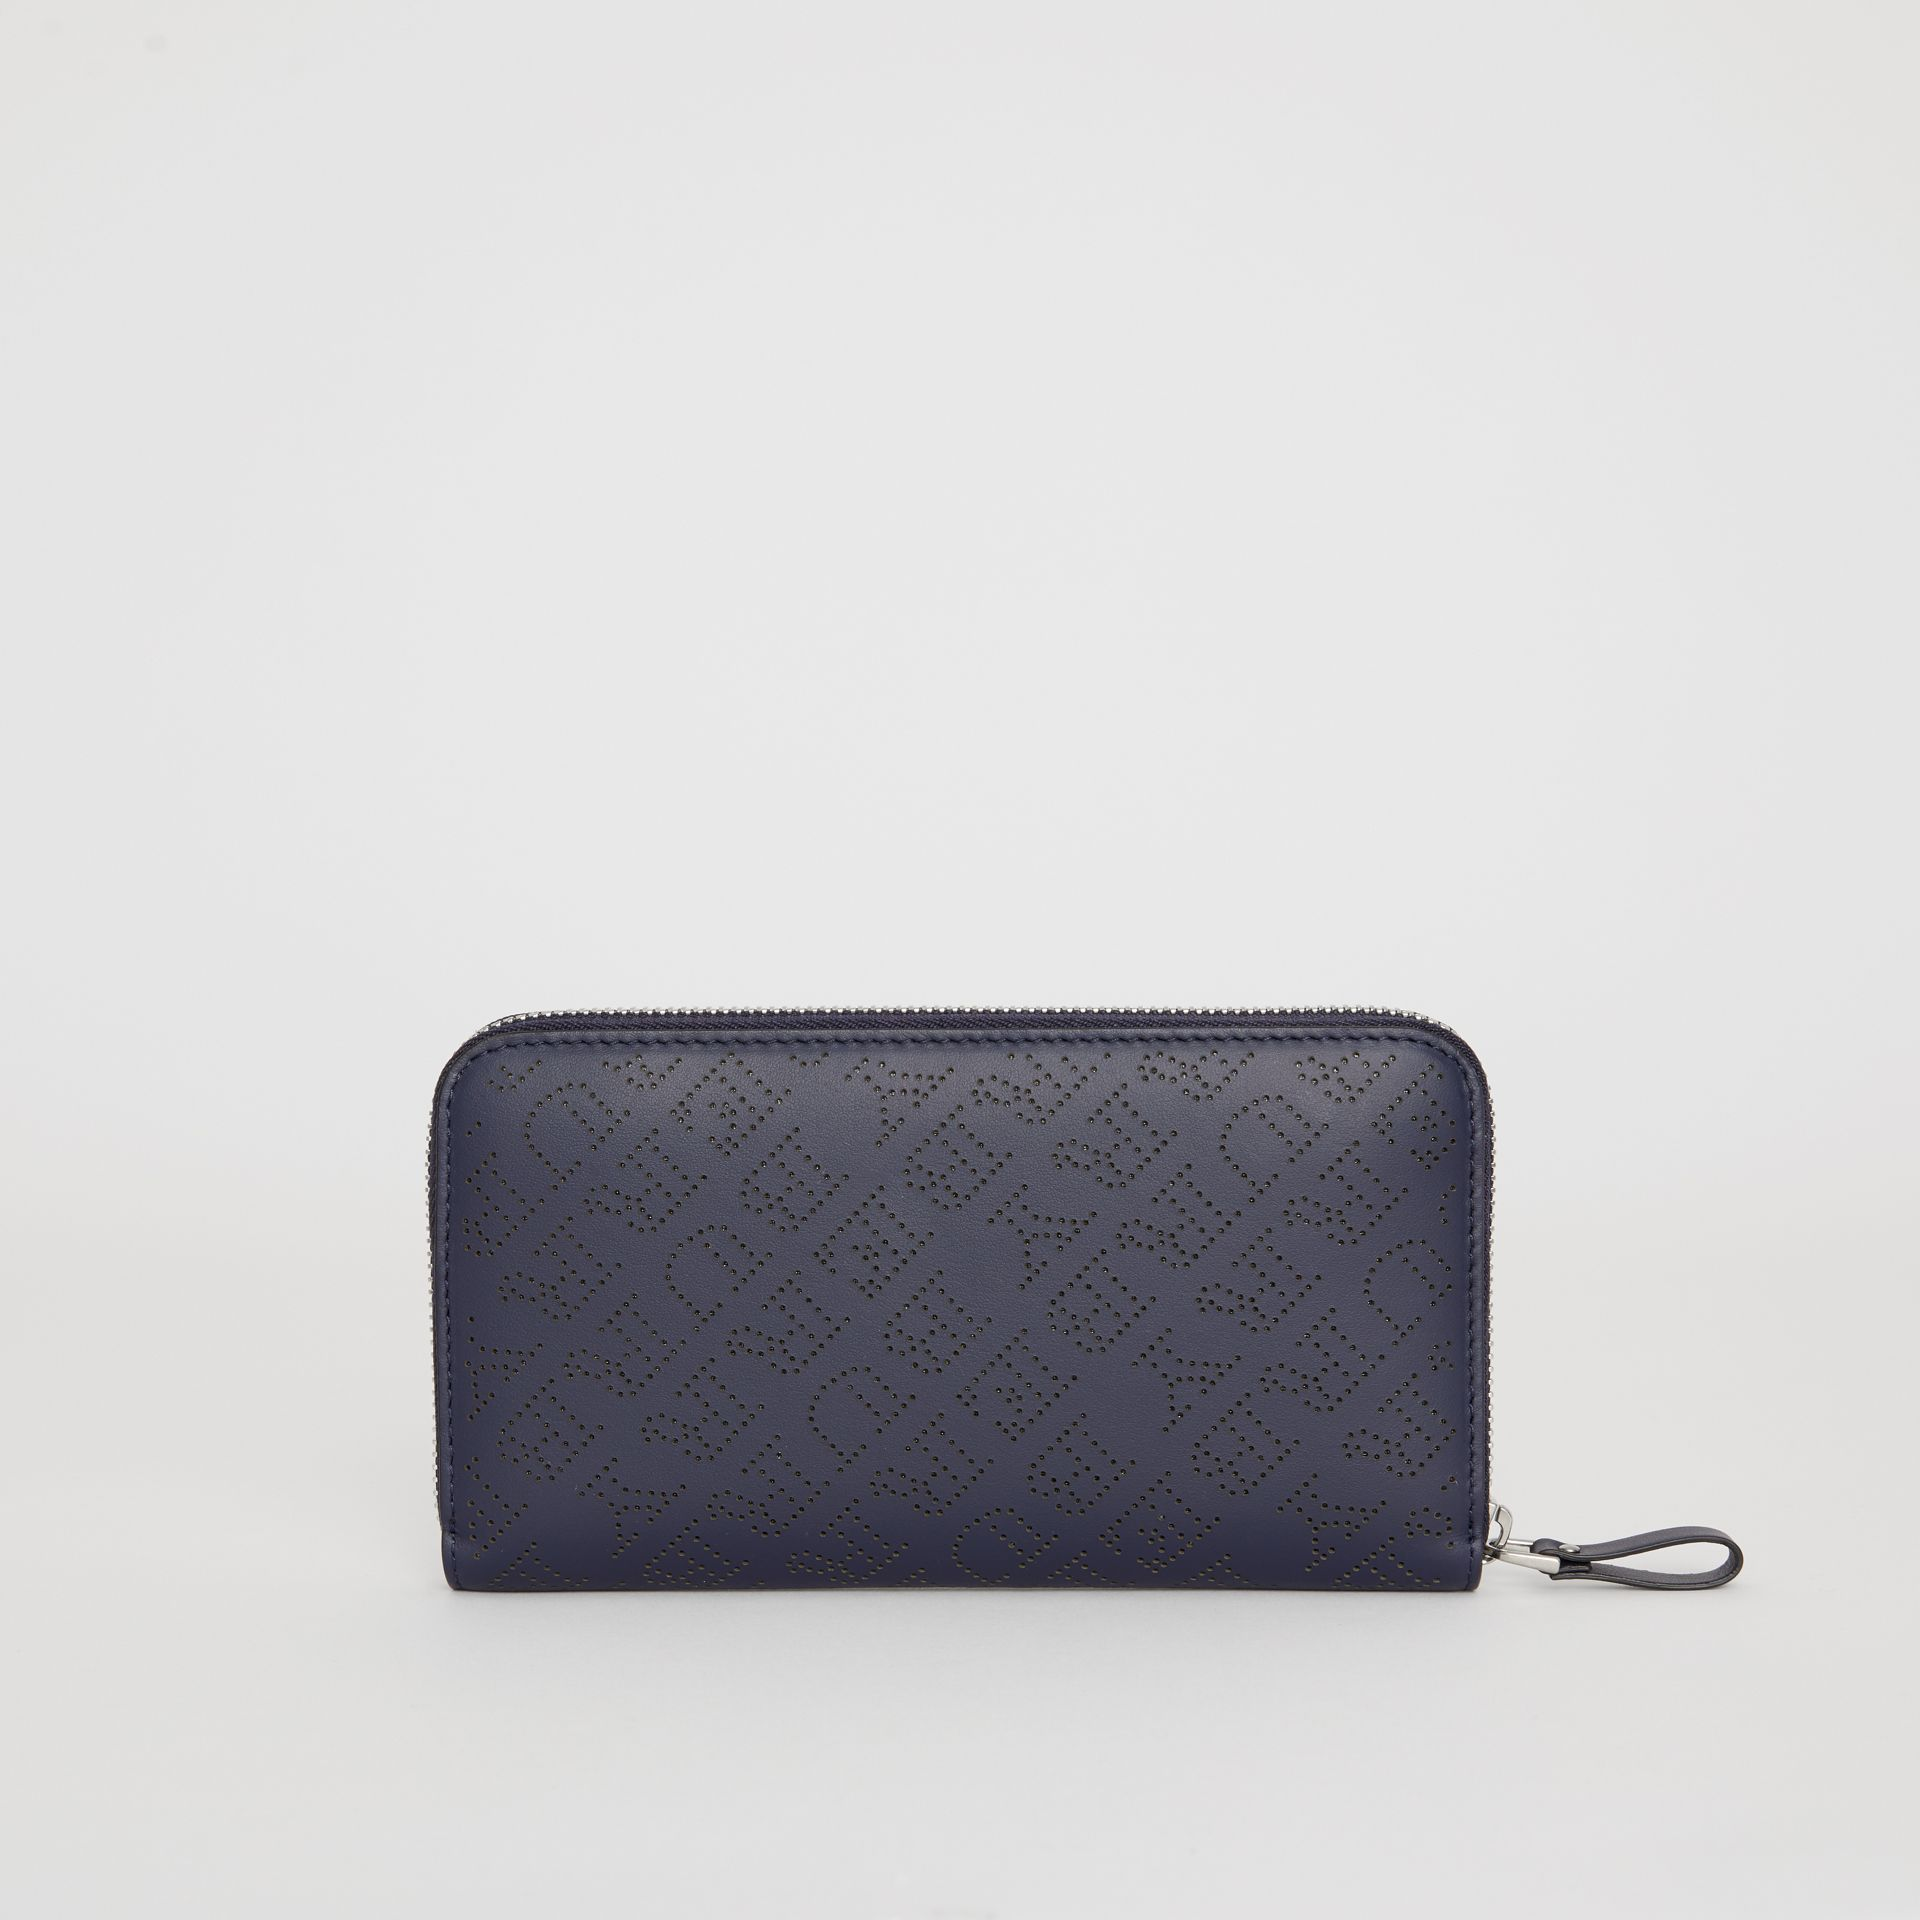 Perforated Leather Ziparound Wallet in Navy - Women | Burberry United States - gallery image 5